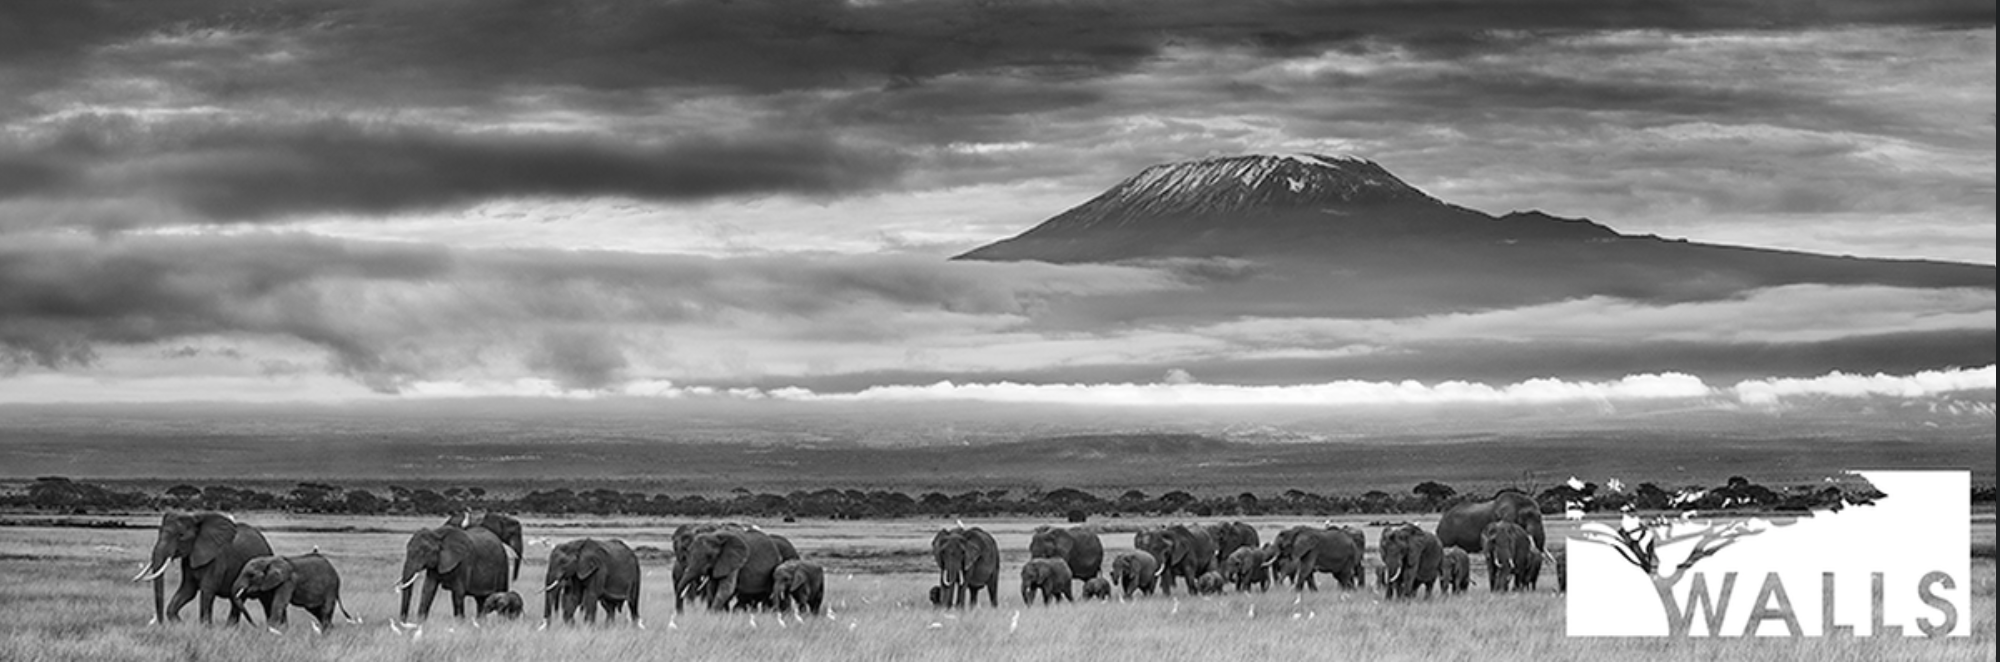 Tembo Jaro   - Mt. Kilimanjaro in the background. Benjamin hid in a blind for two (2) Weeks waiting for the annual elephant migration to pass by.